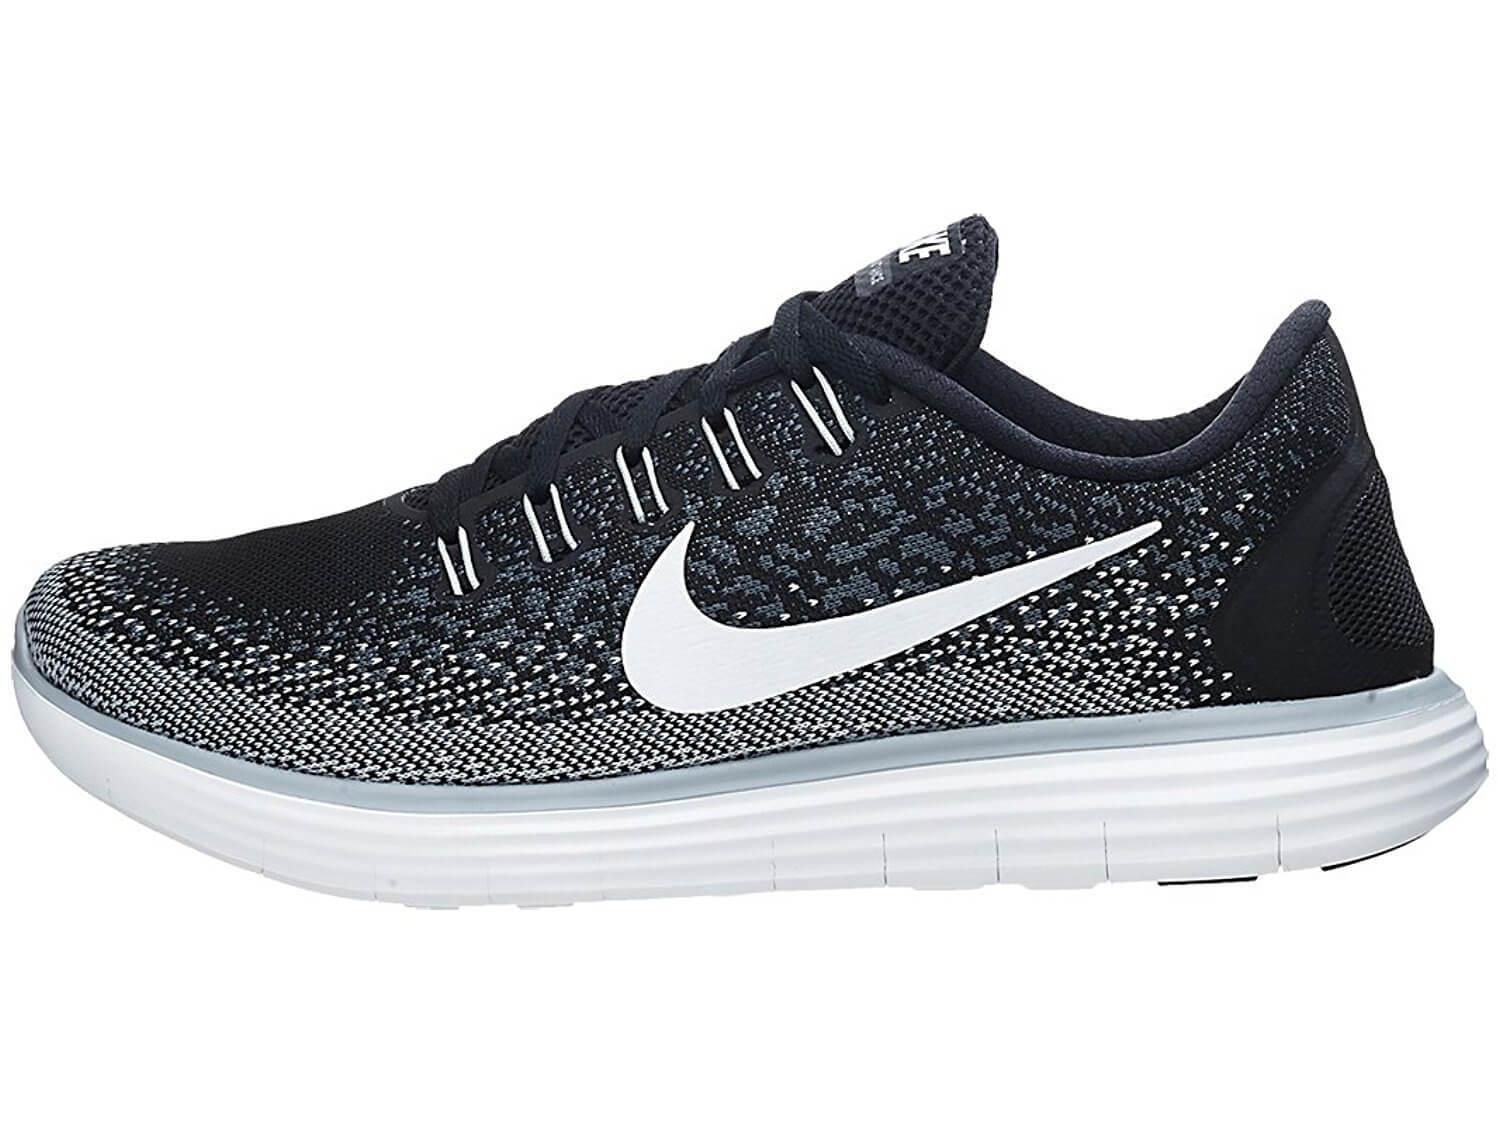 new product 239bc 70311 ... As is custom for Nike, the Free RN Distance is stylish and comes in many